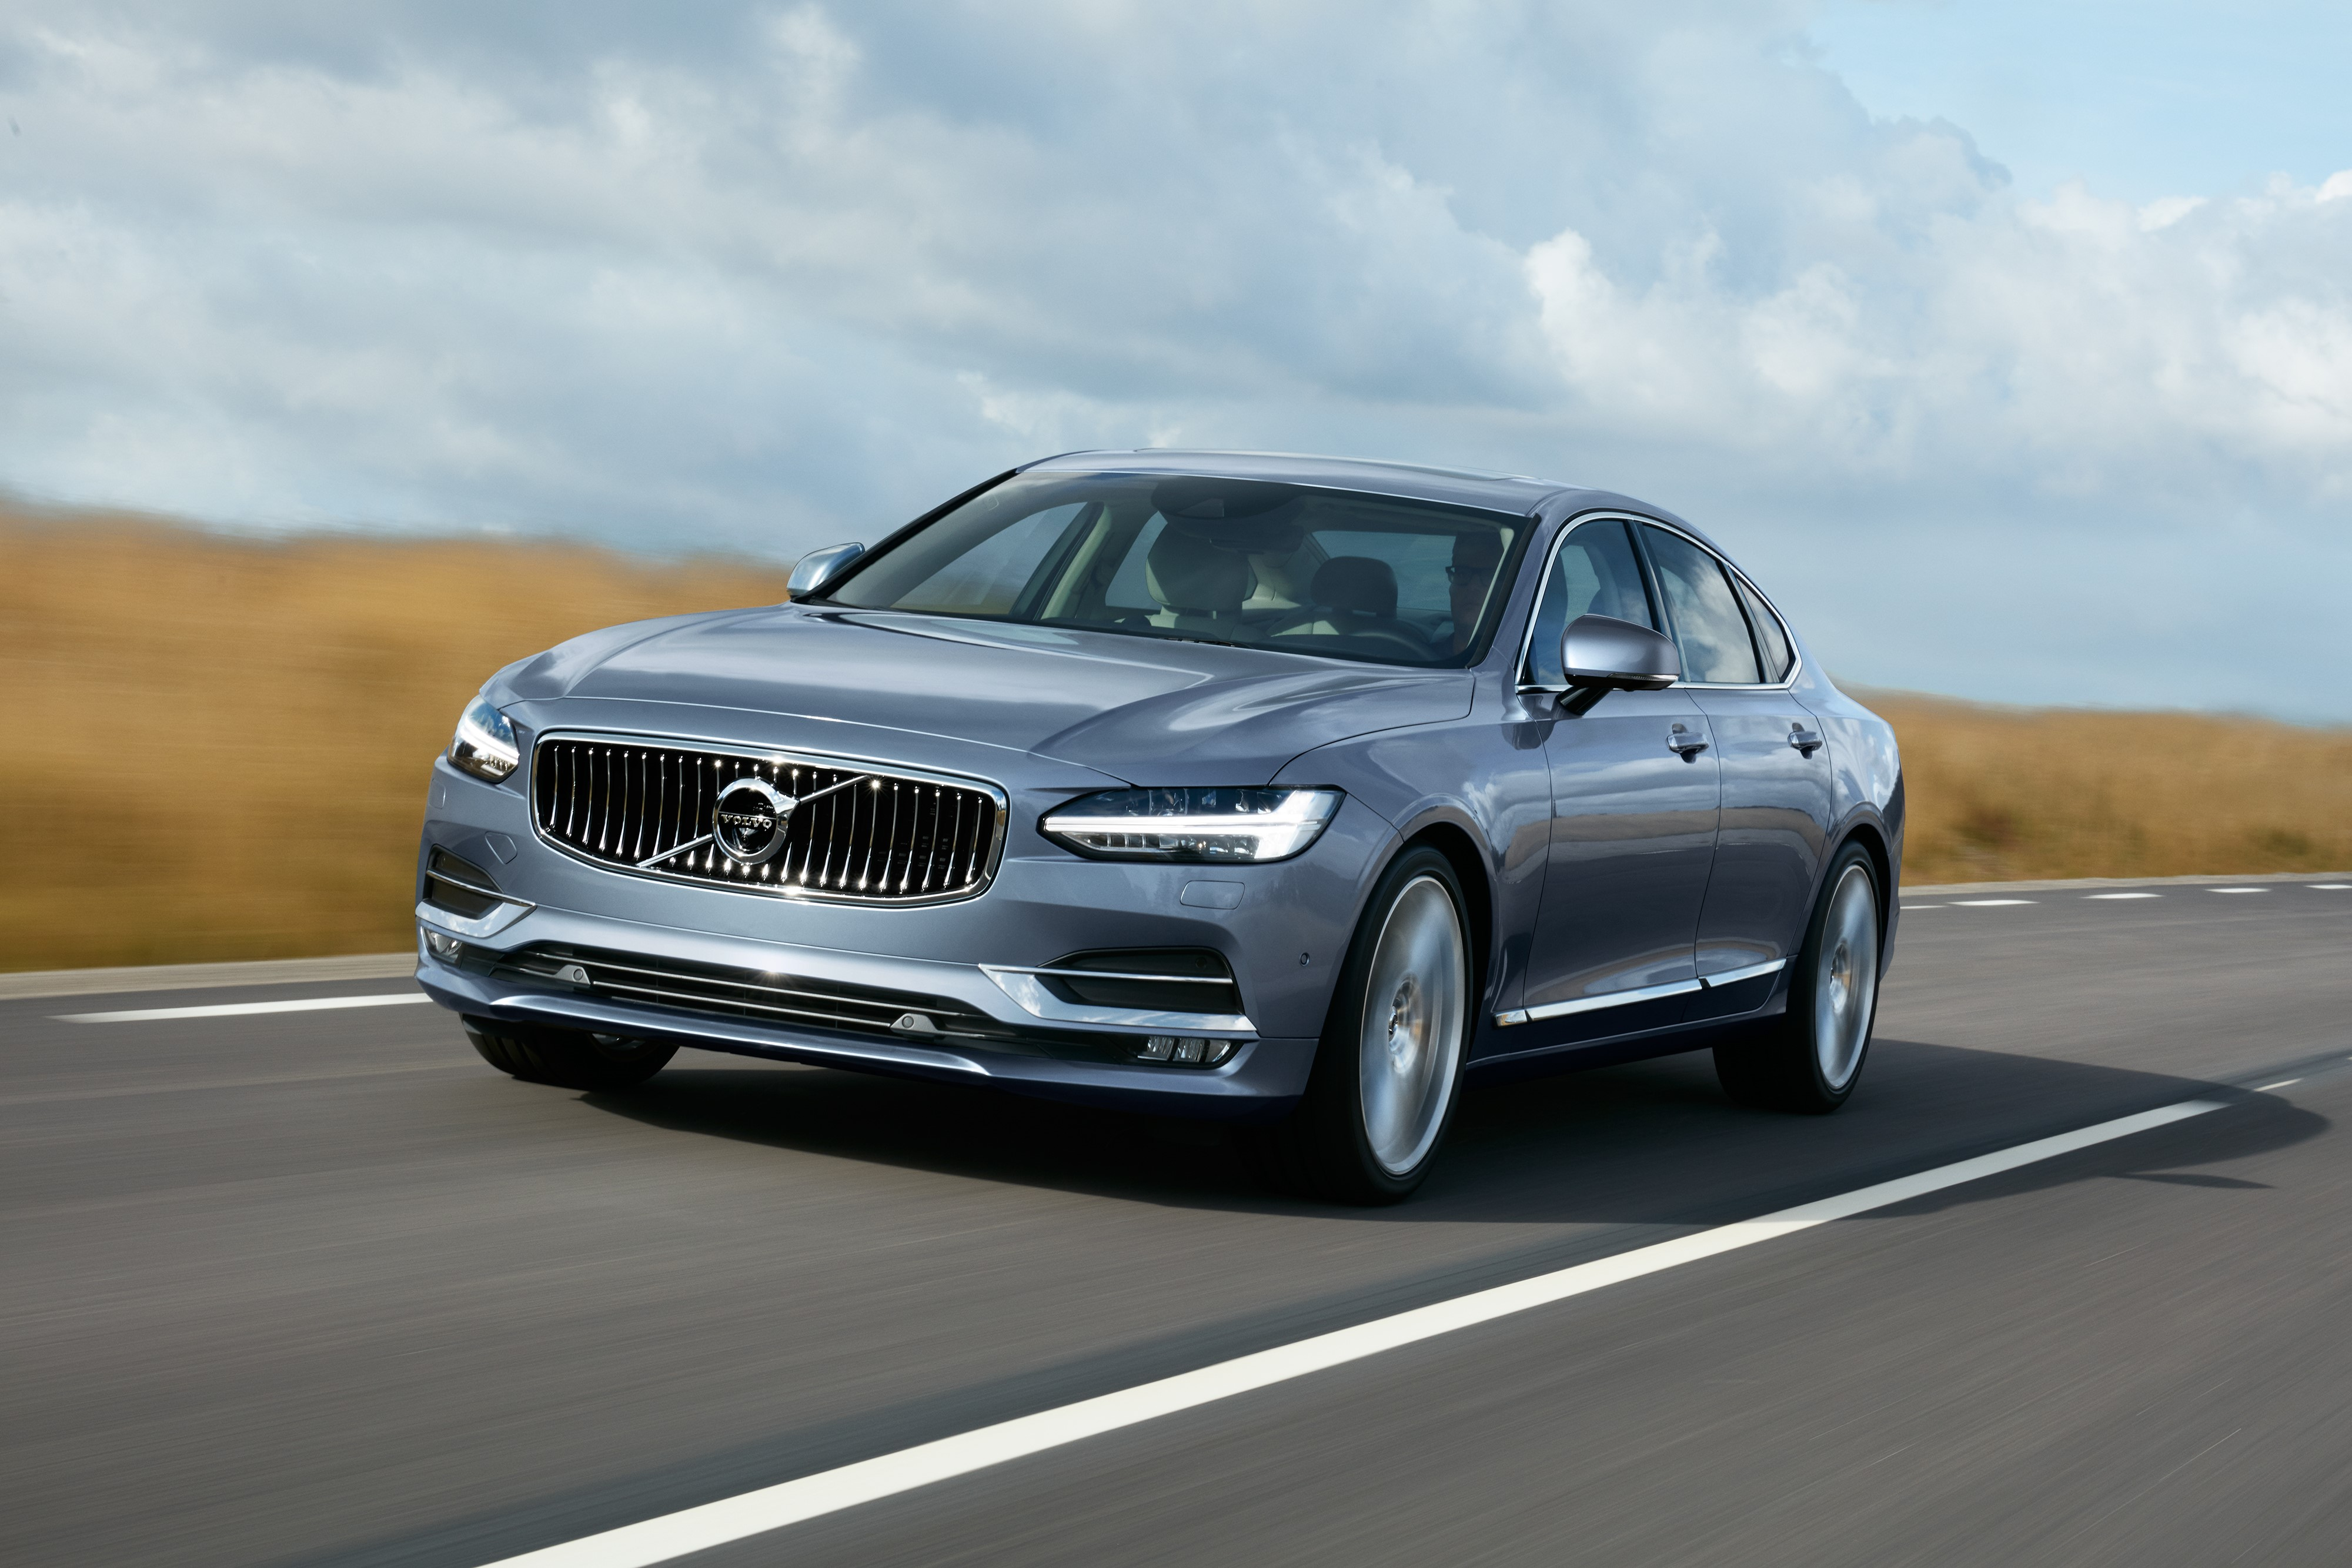 The New S90 from Volvo is a High-End Luxury Sedan to Please the Eyes